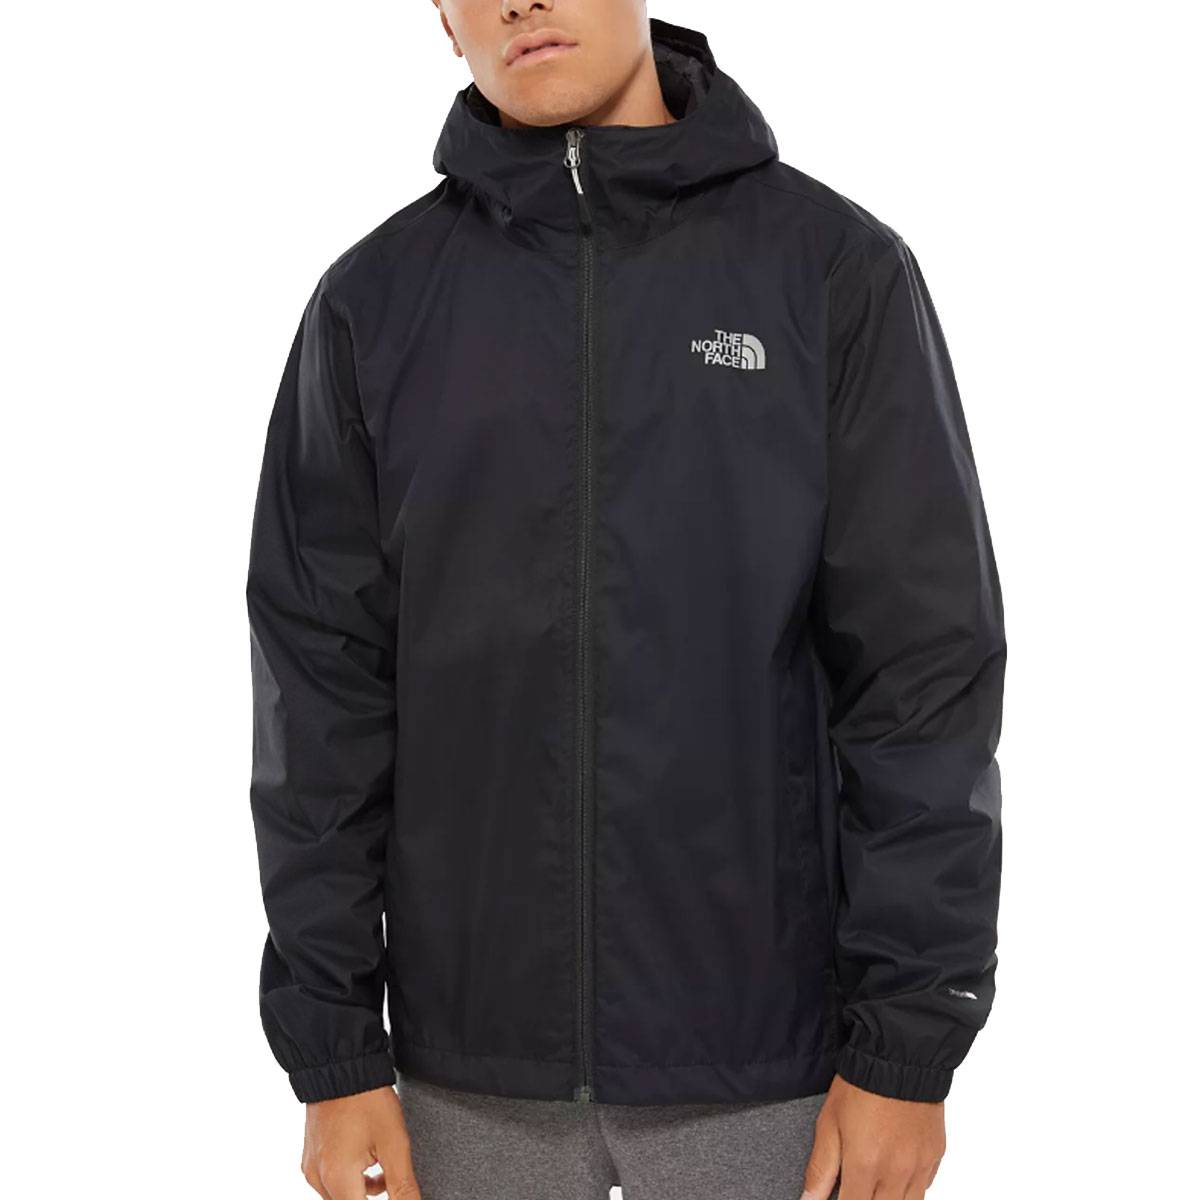 The North Face K-Way Quest Nera - M - Uomo